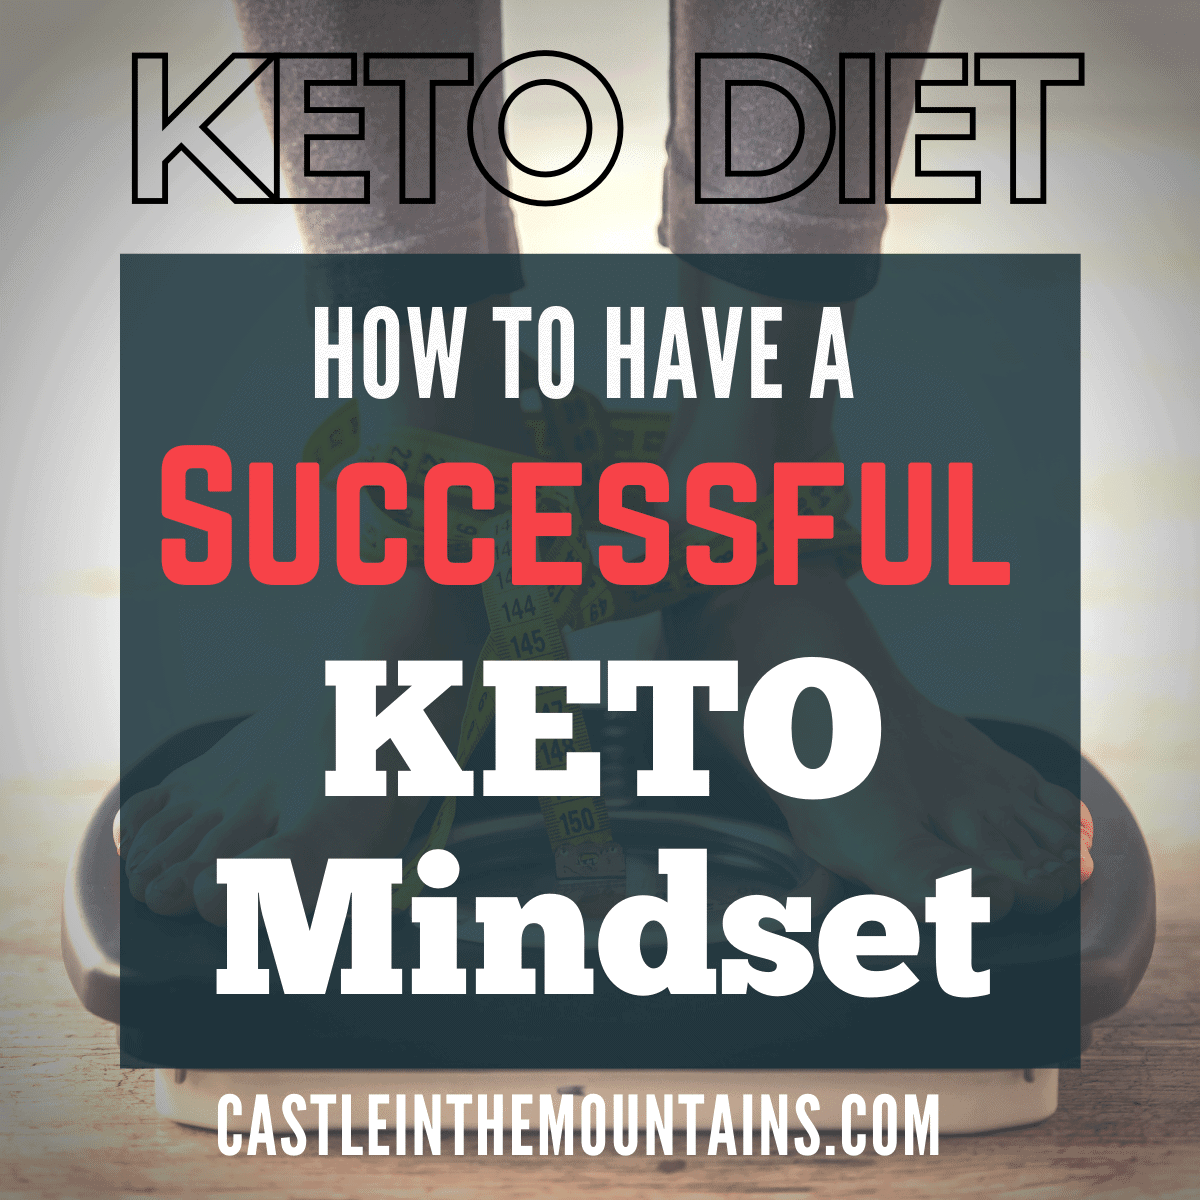 How to Have a Successful Keto Mindset